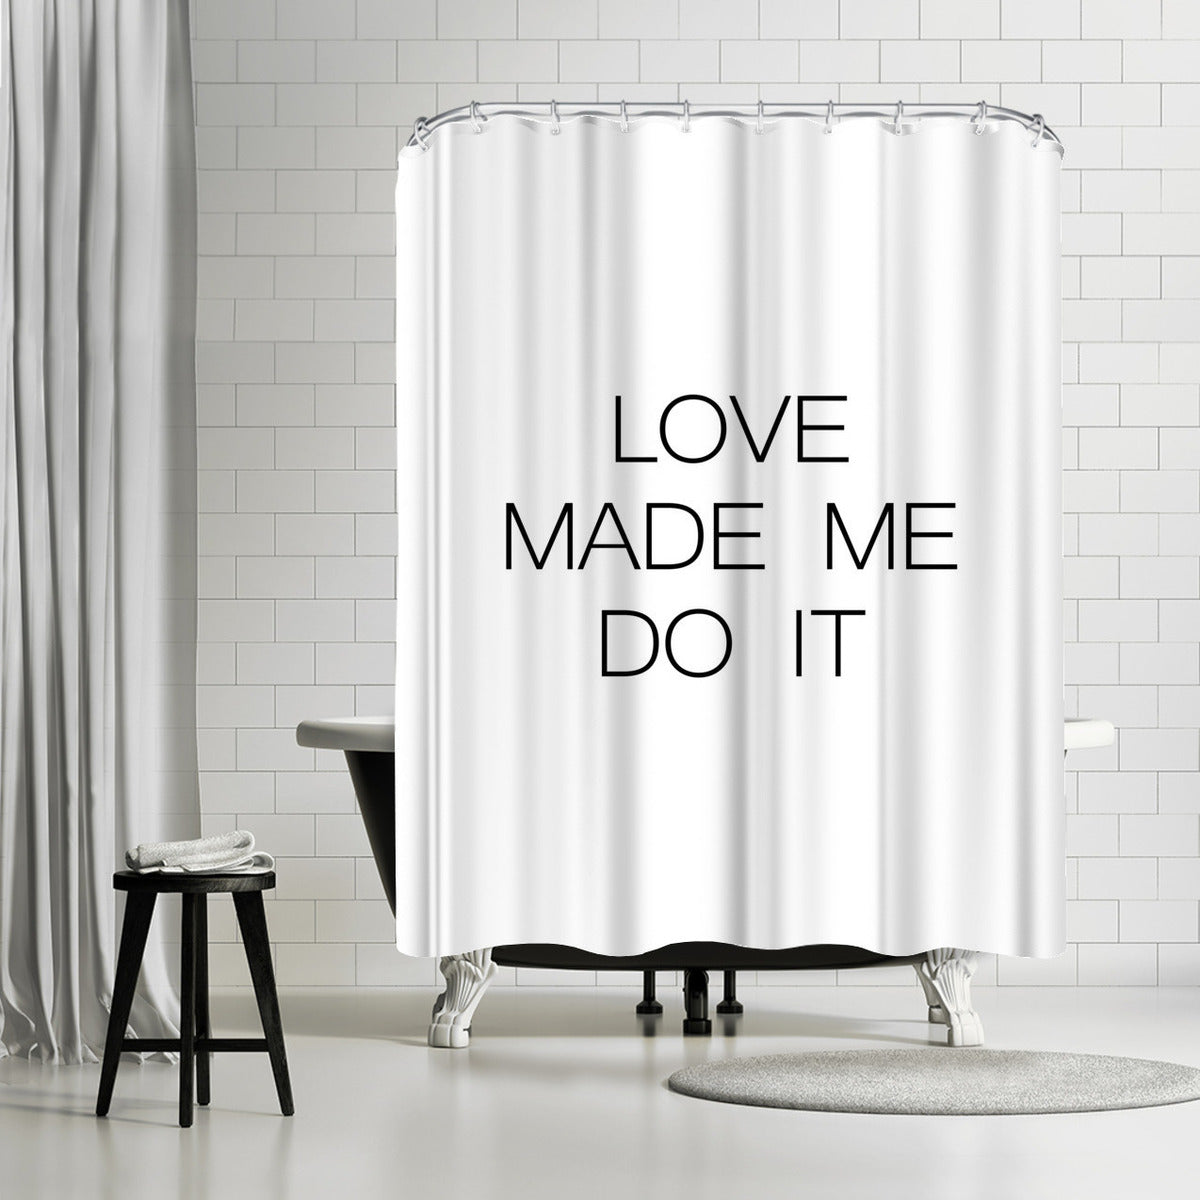 Love Made Me Do It by Explicit Design Shower Curtain - Shower Curtain - Americanflat